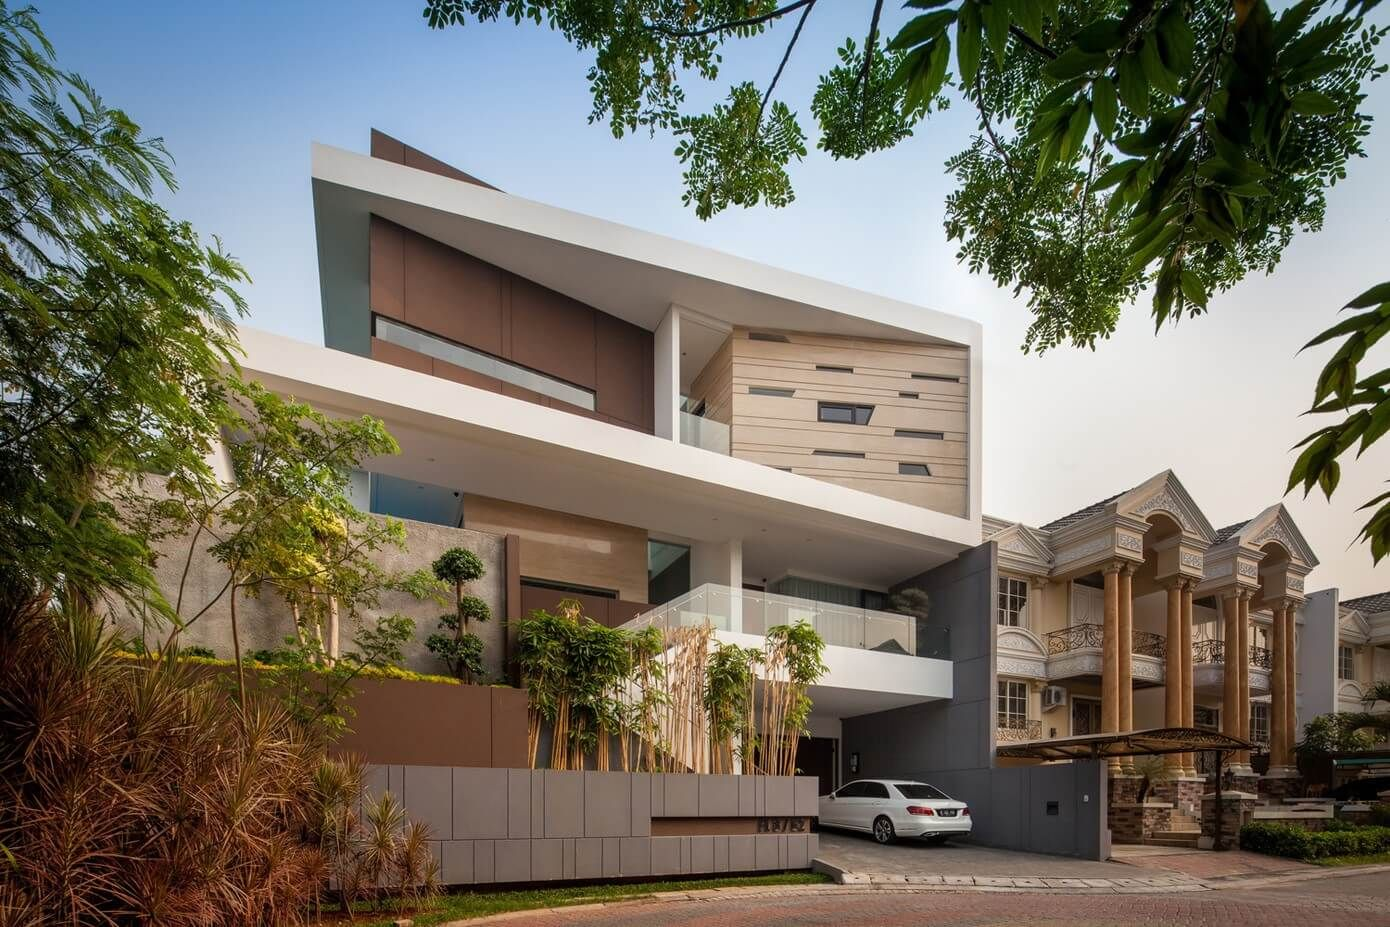 House in Jakarta by DPHS Architects